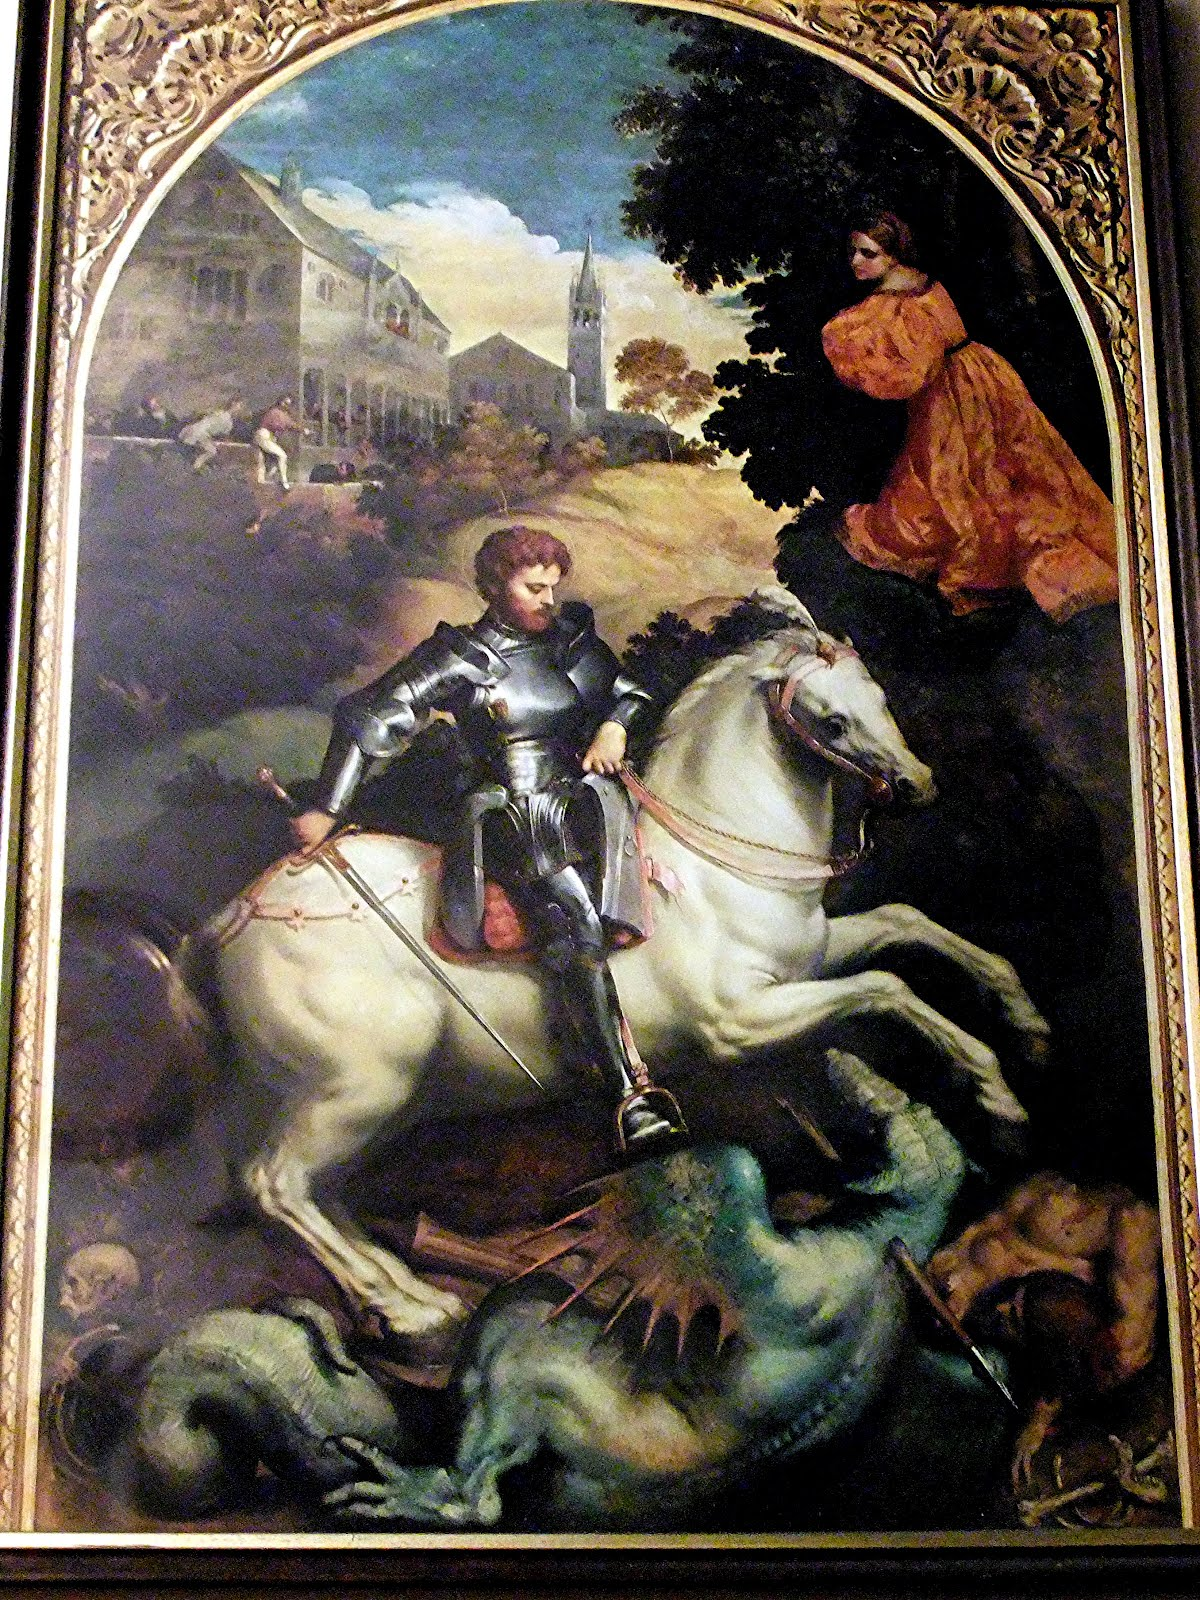 St George Dragons: ShukerNature: ST GEORGE AND A VERY POLYMORPHIC DRAGON